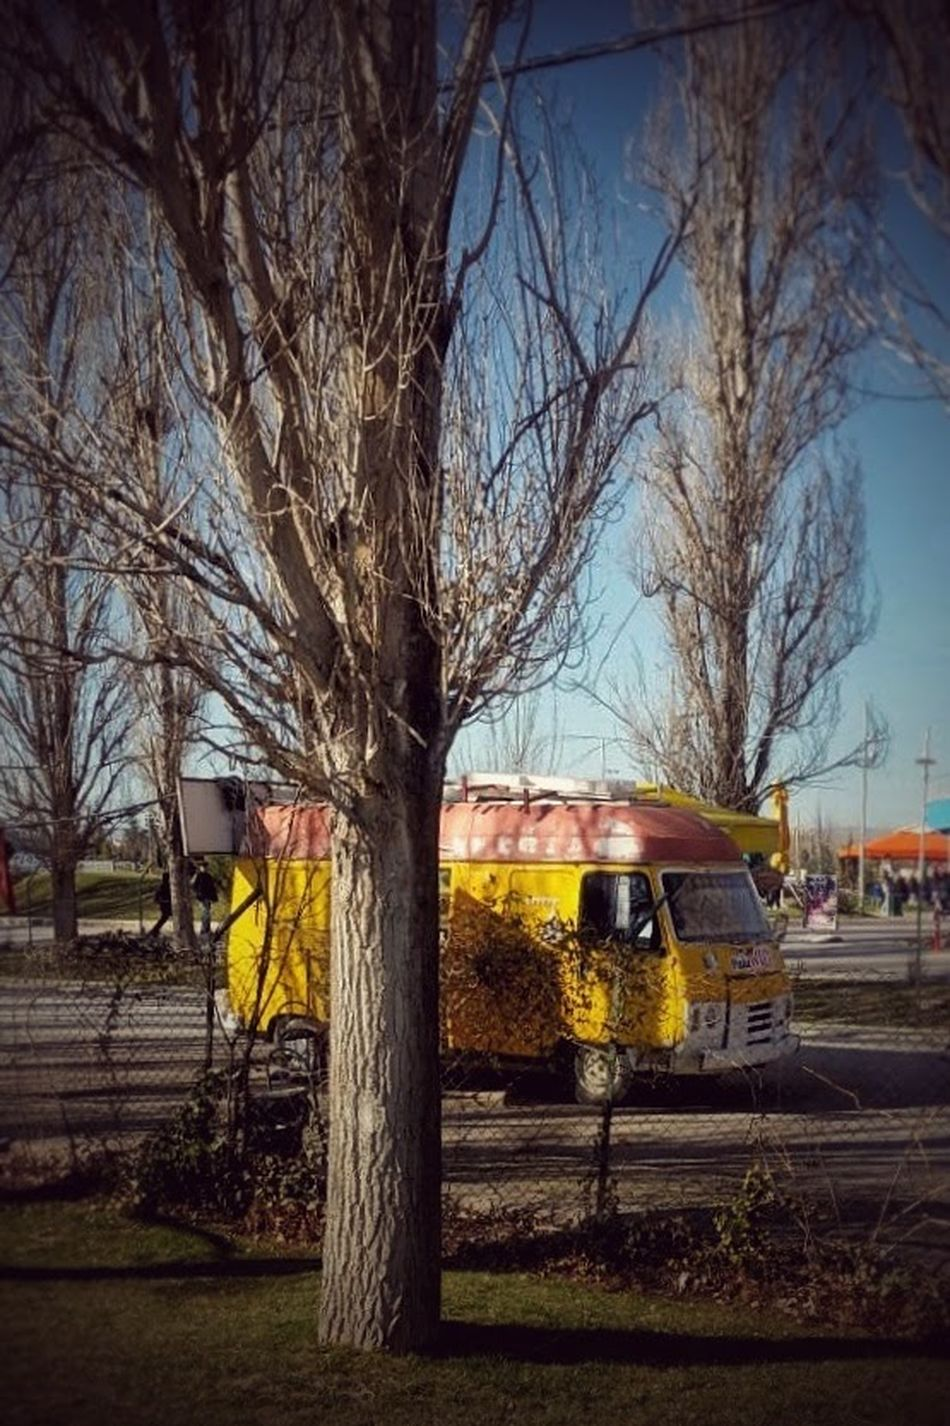 Bare Tree Tree Transportation Mode Of Transport Built Structure Outdoors Architecture Building Exterior Sky No People Public Transportation Land Vehicle Day Branch Nature Relaxing Taking Photos Karavan